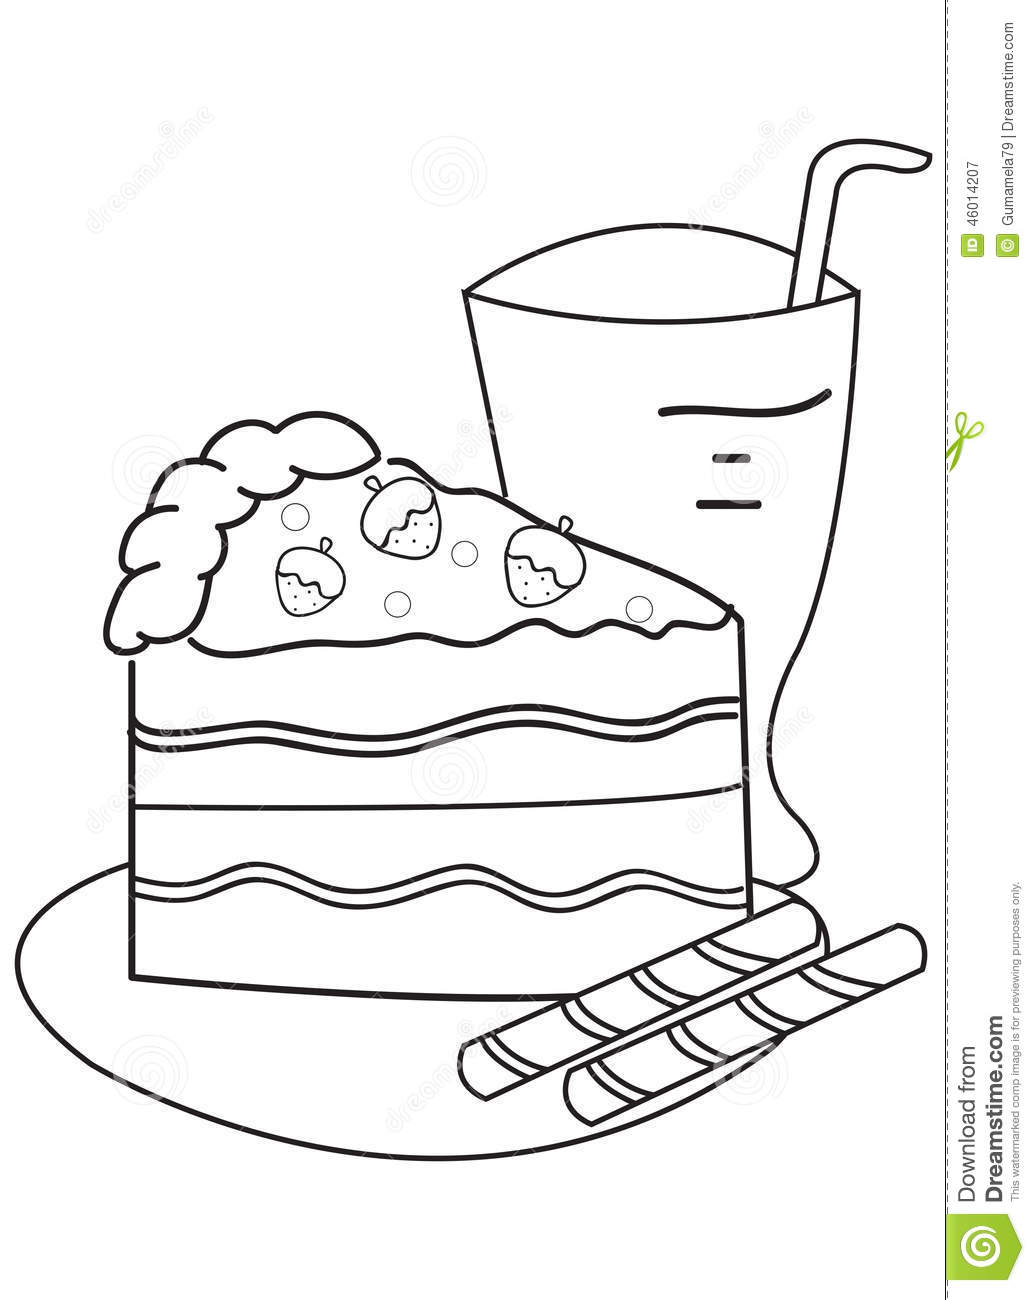 Hand Drawn Coloring Page Of A Slice Of Cake And Drink